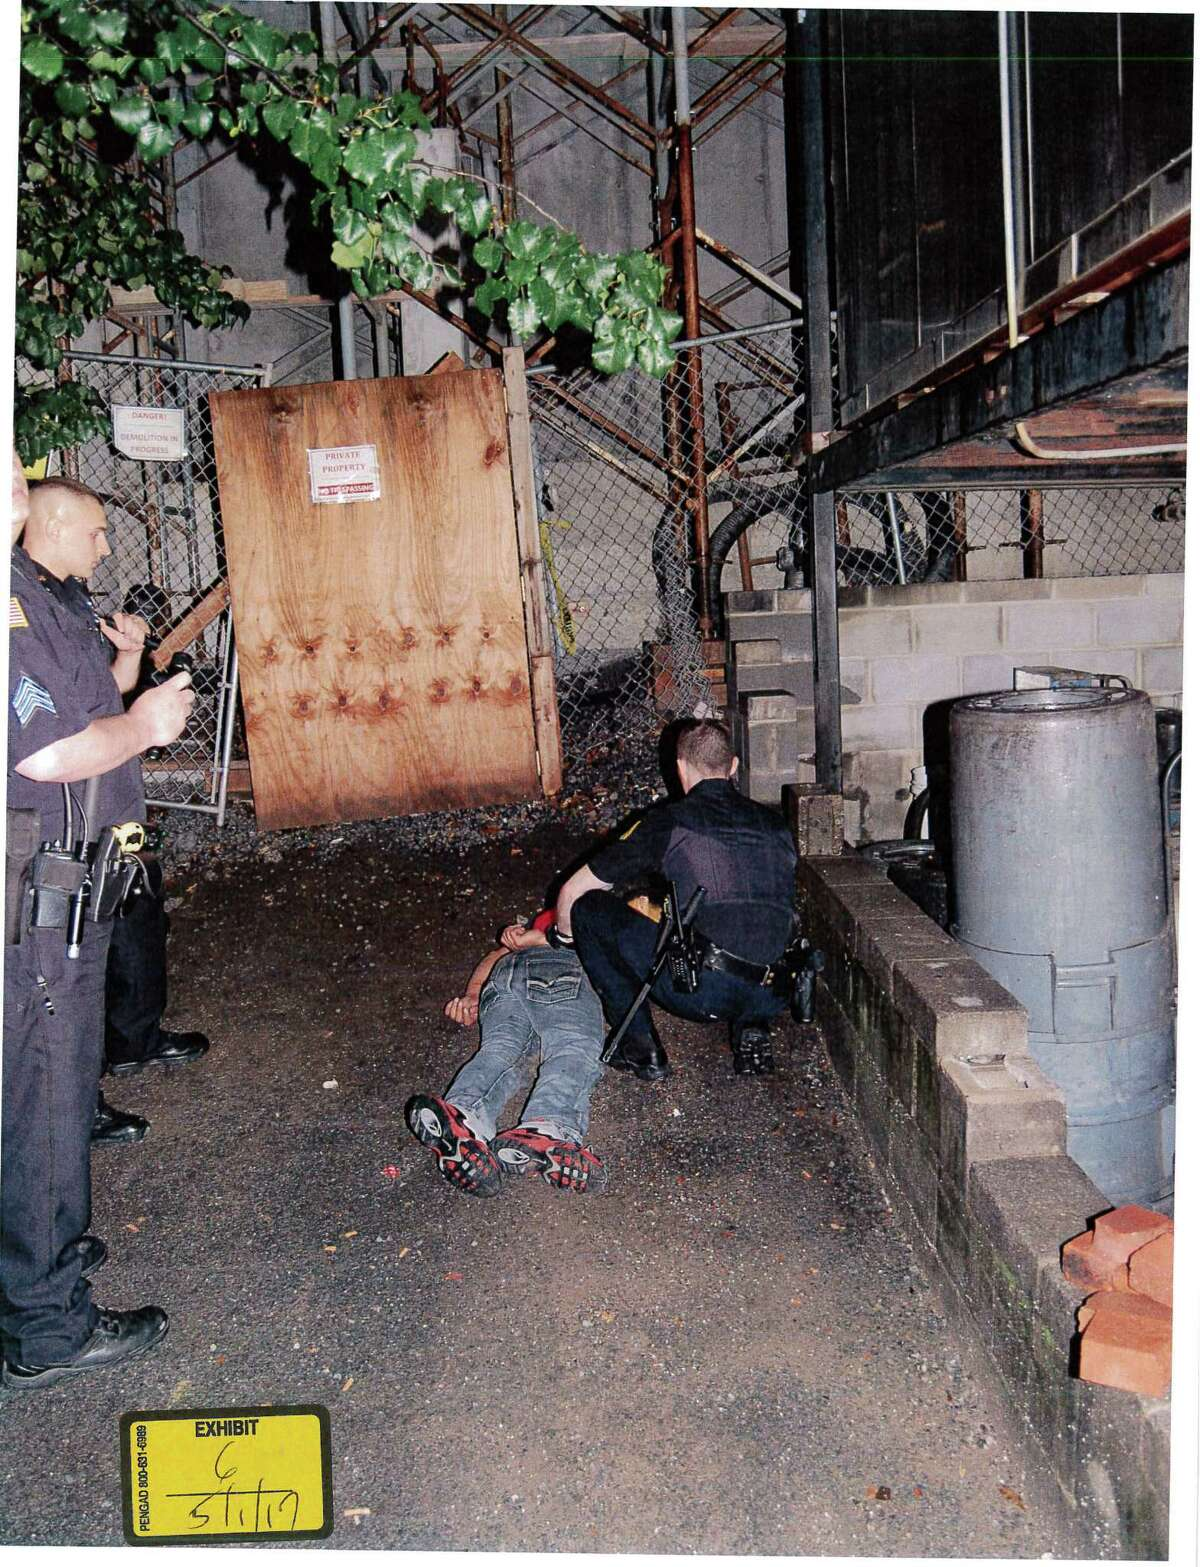 Photos from the scene where police apprehended Darryl Mount on Aug. 31, 2013, are part of the wrongful death lawsuit brought by Mount's mother.